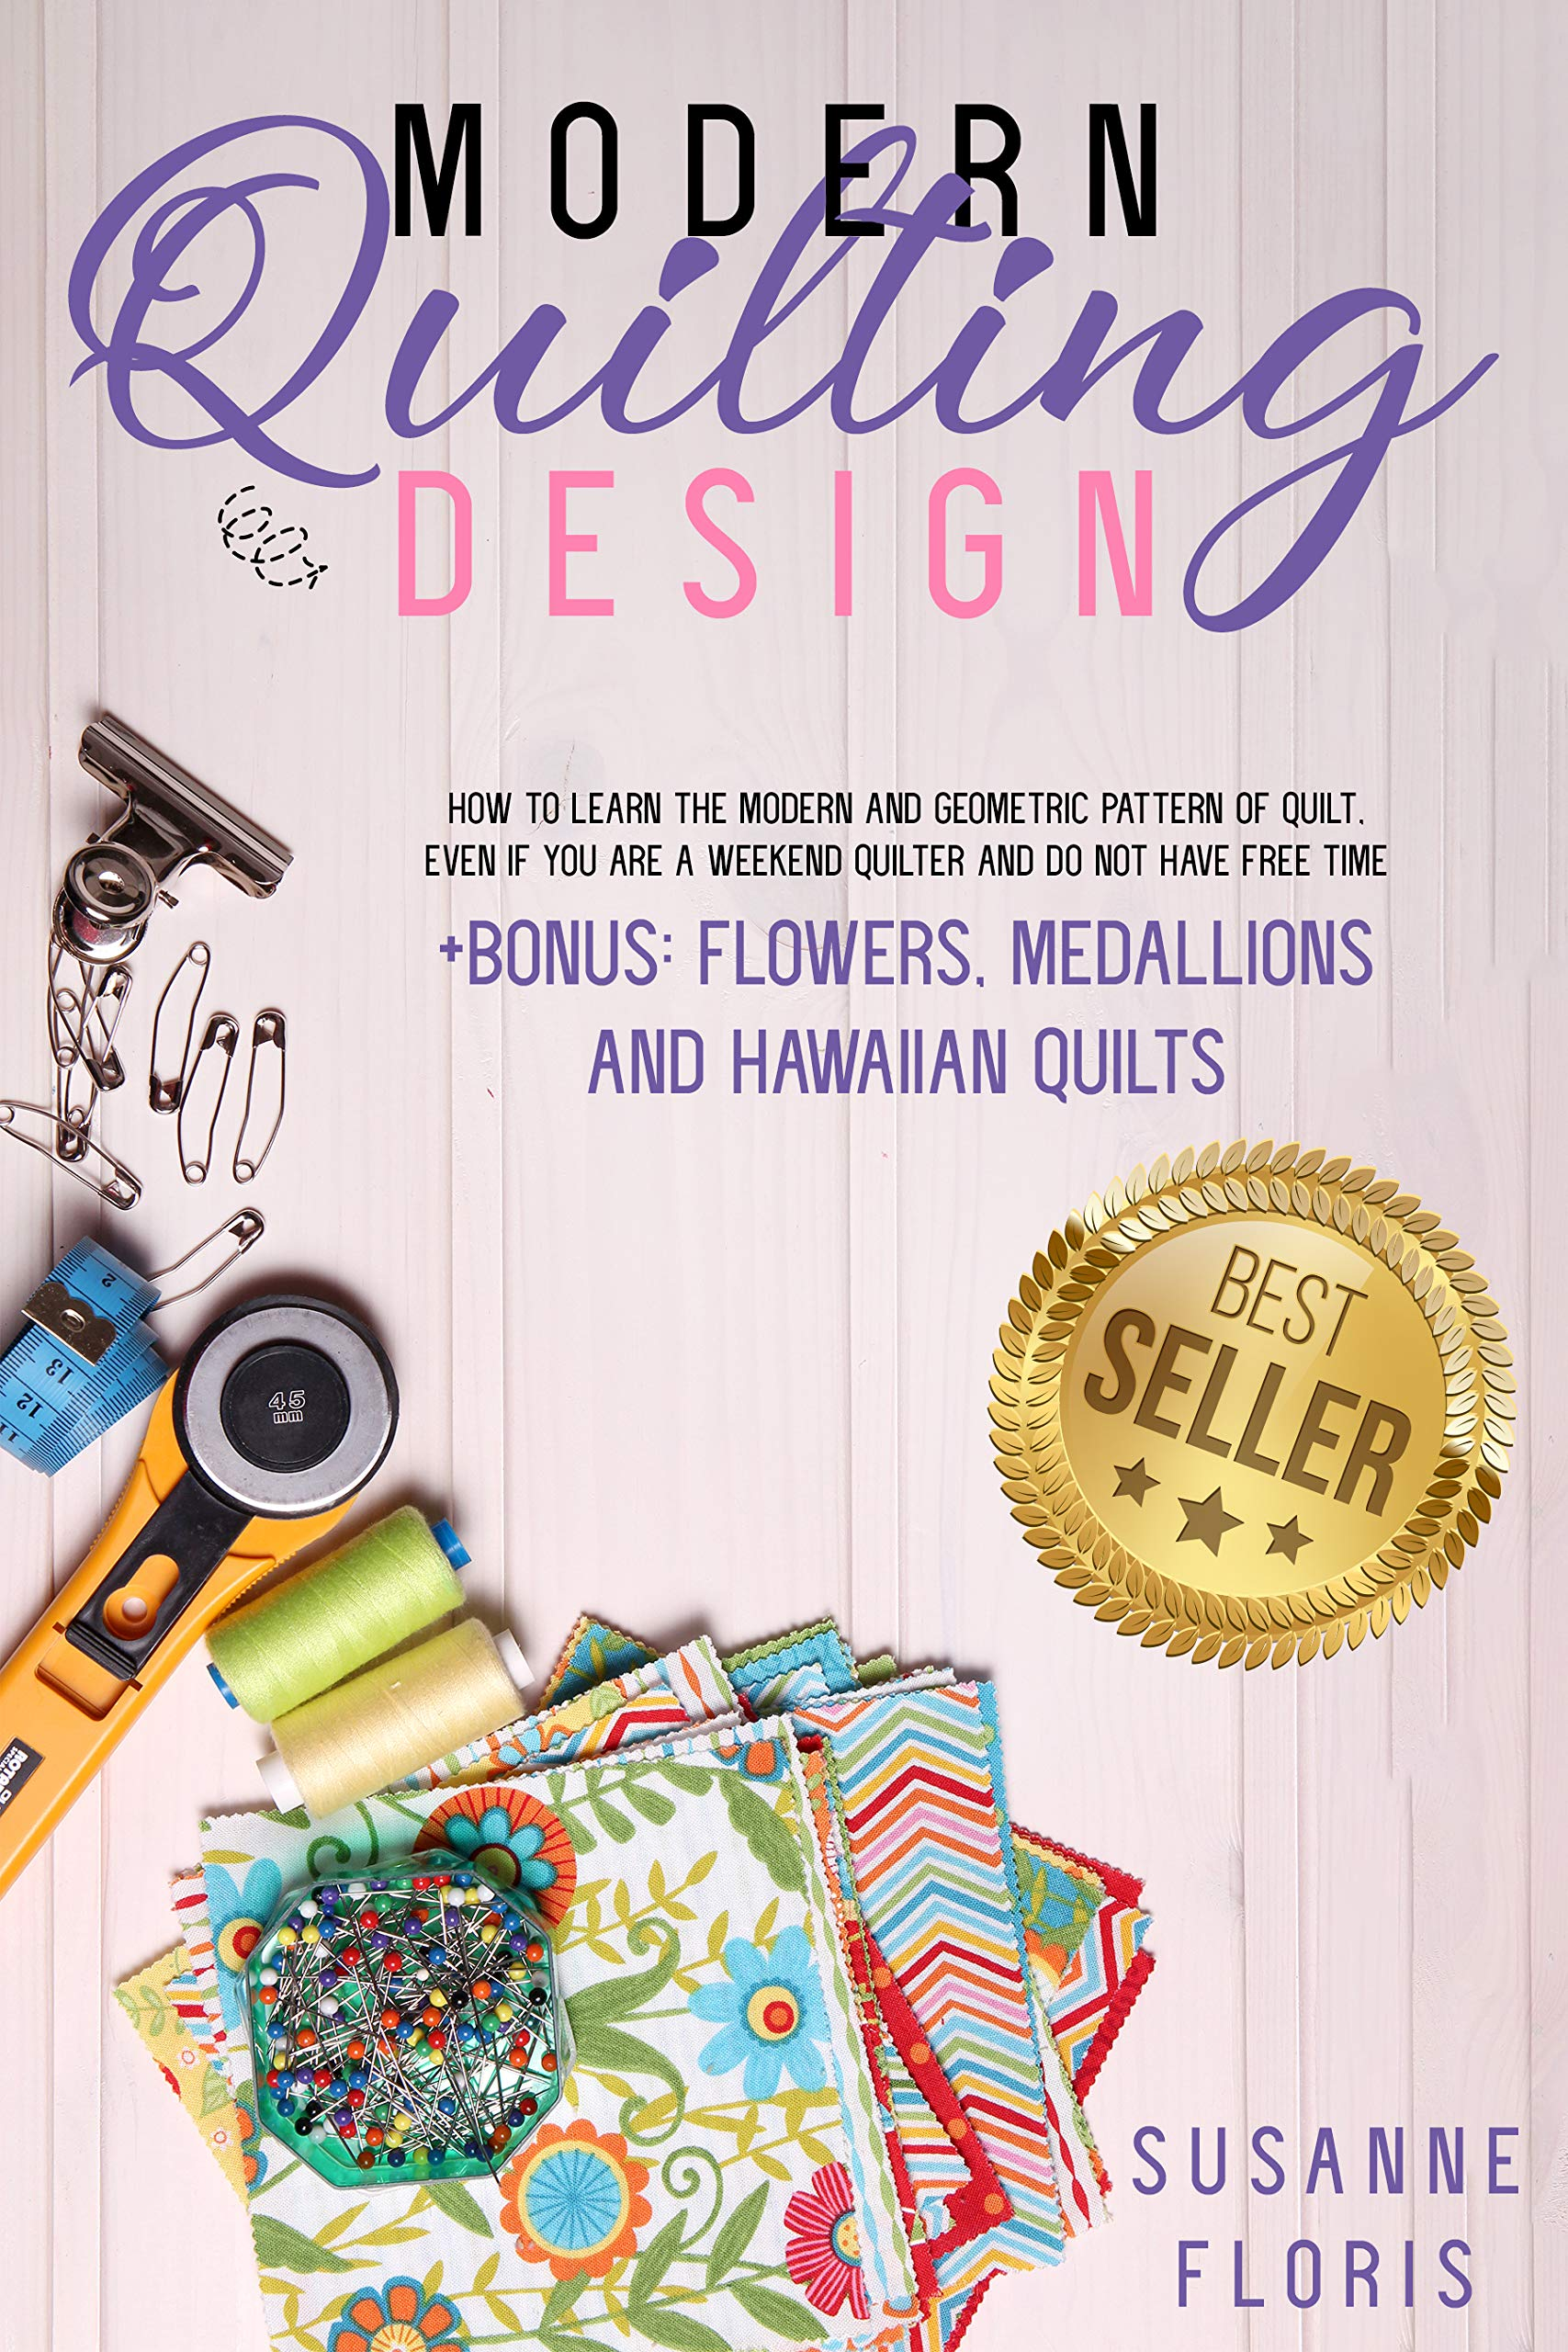 MODERN QUILTING DESIGN: How to Learn The Modern and Geometric Pattern of Quilt, Even if You Are a Weekend Quilter and Do Not Have Free Time, BONUS: Flowers, ... (From Zero to Professional Quilters Book 2)